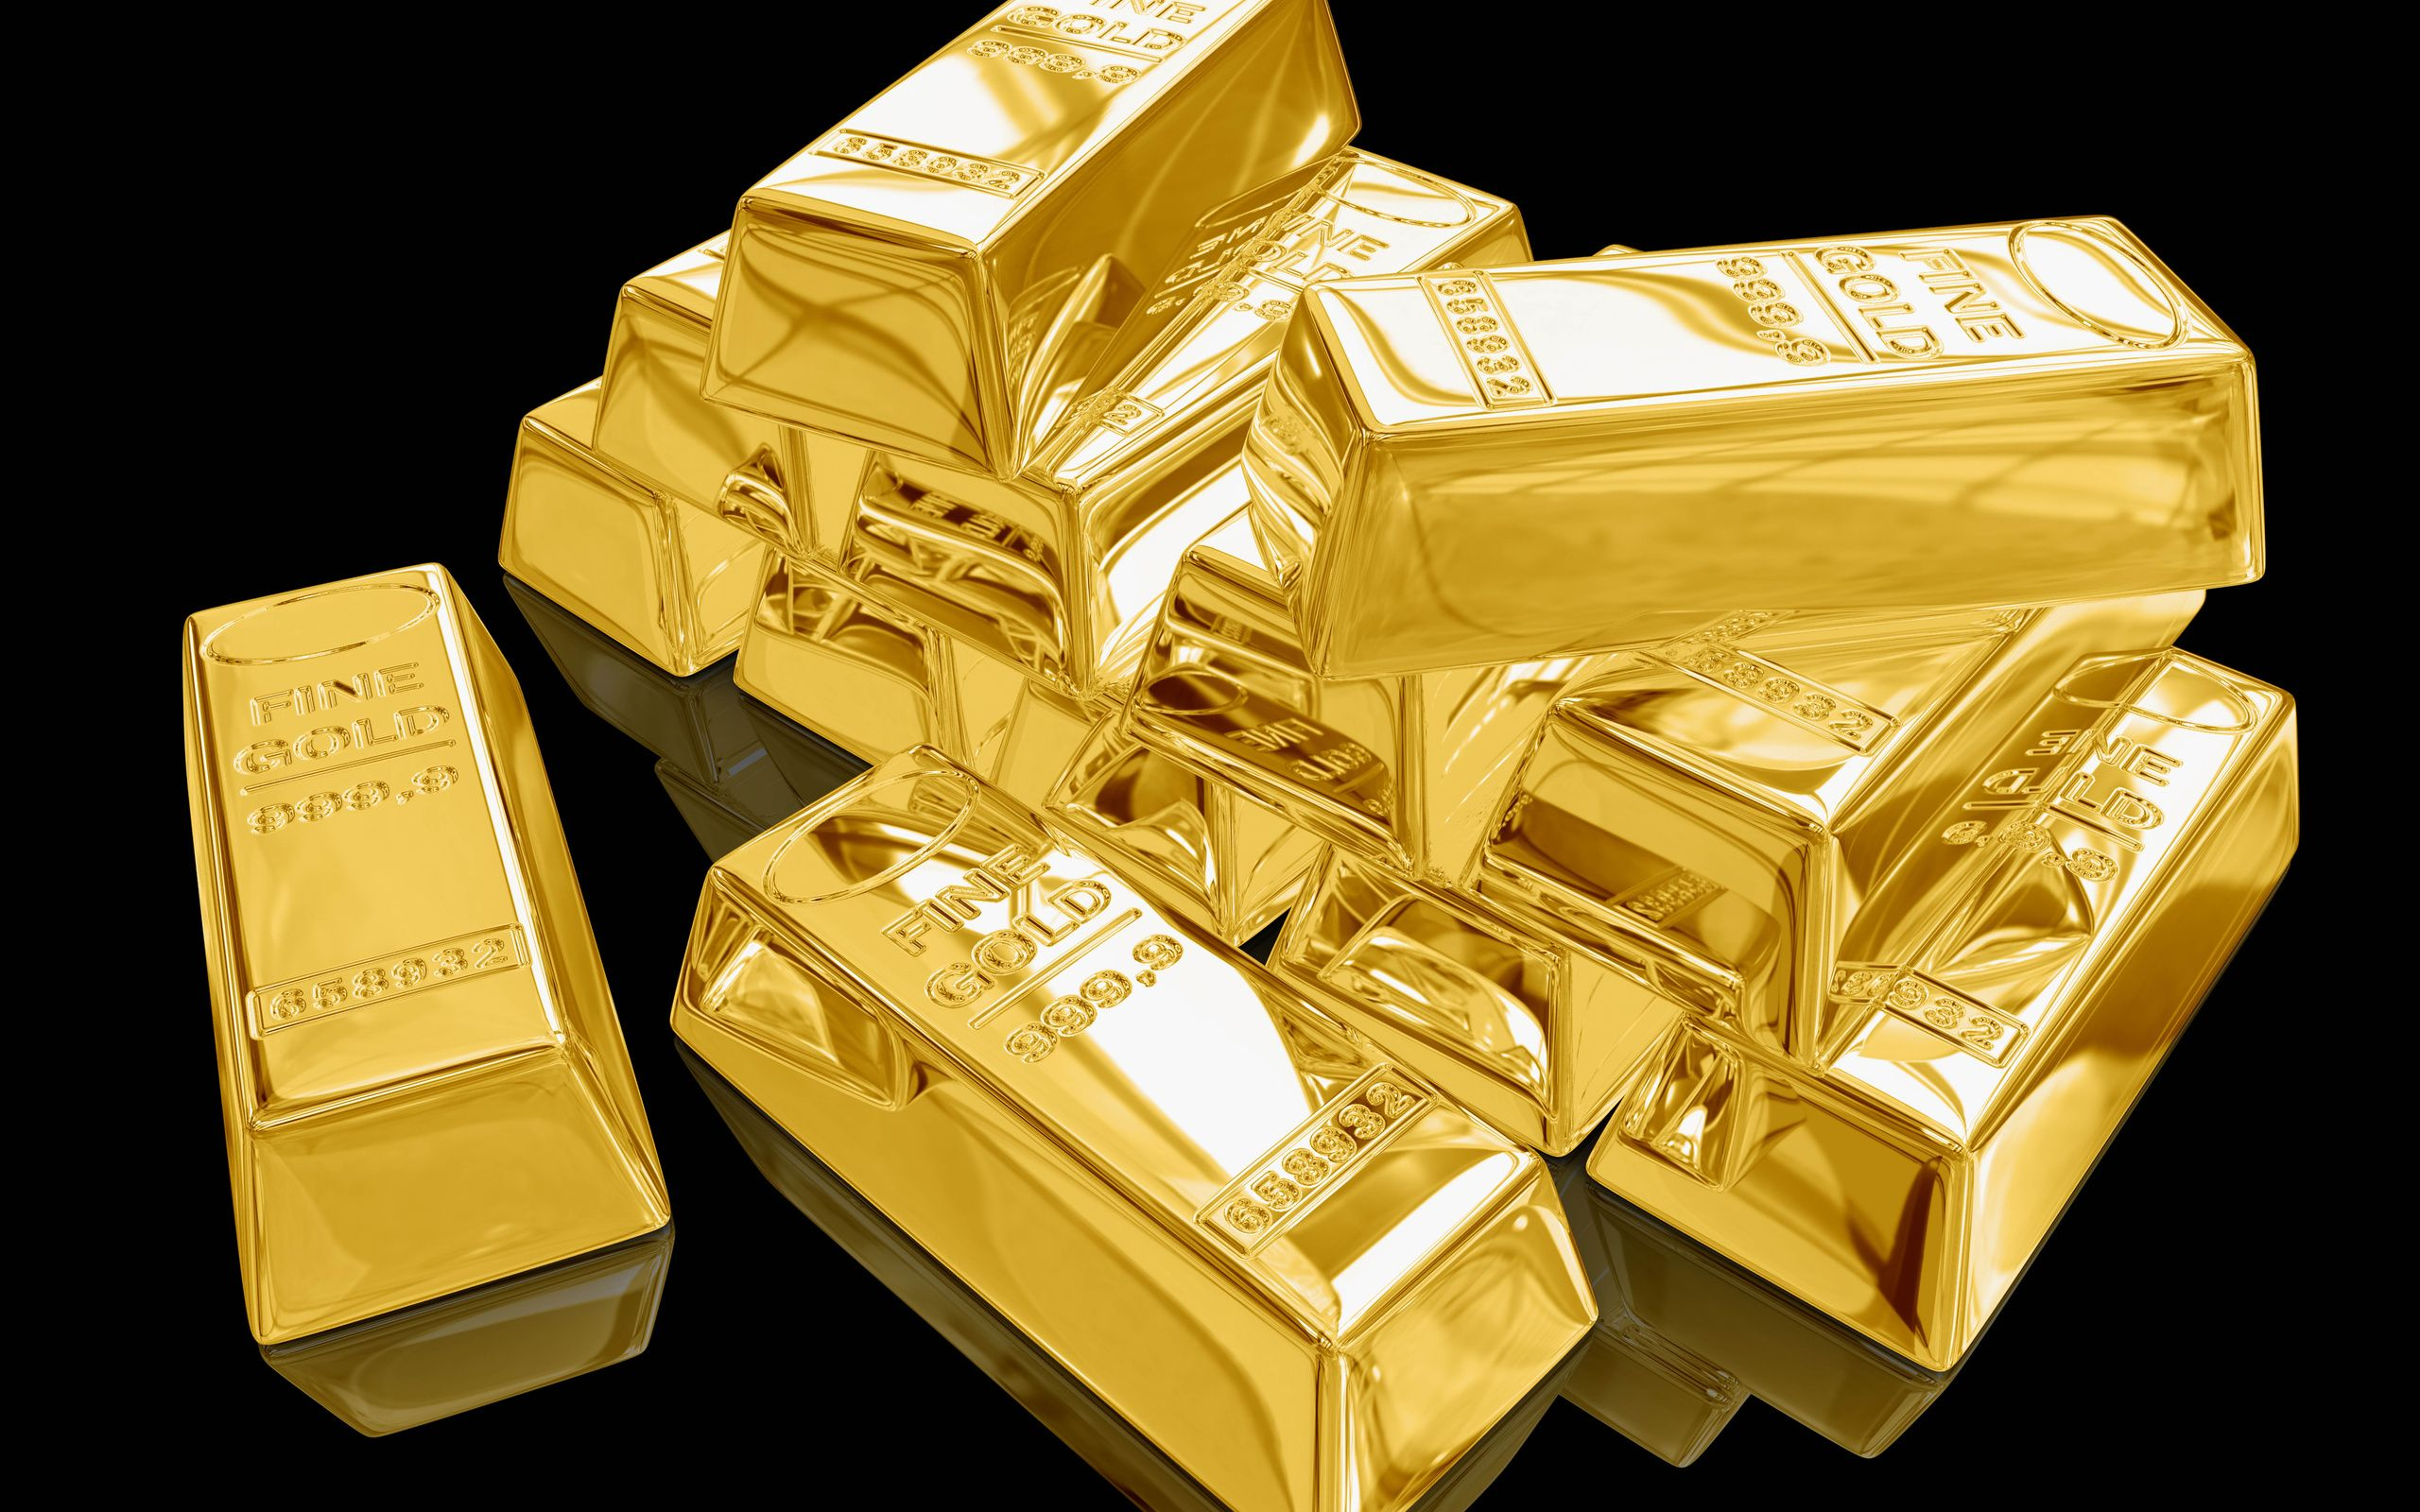 gold coins money wallpaper hd hd wallpapers free high definition ...